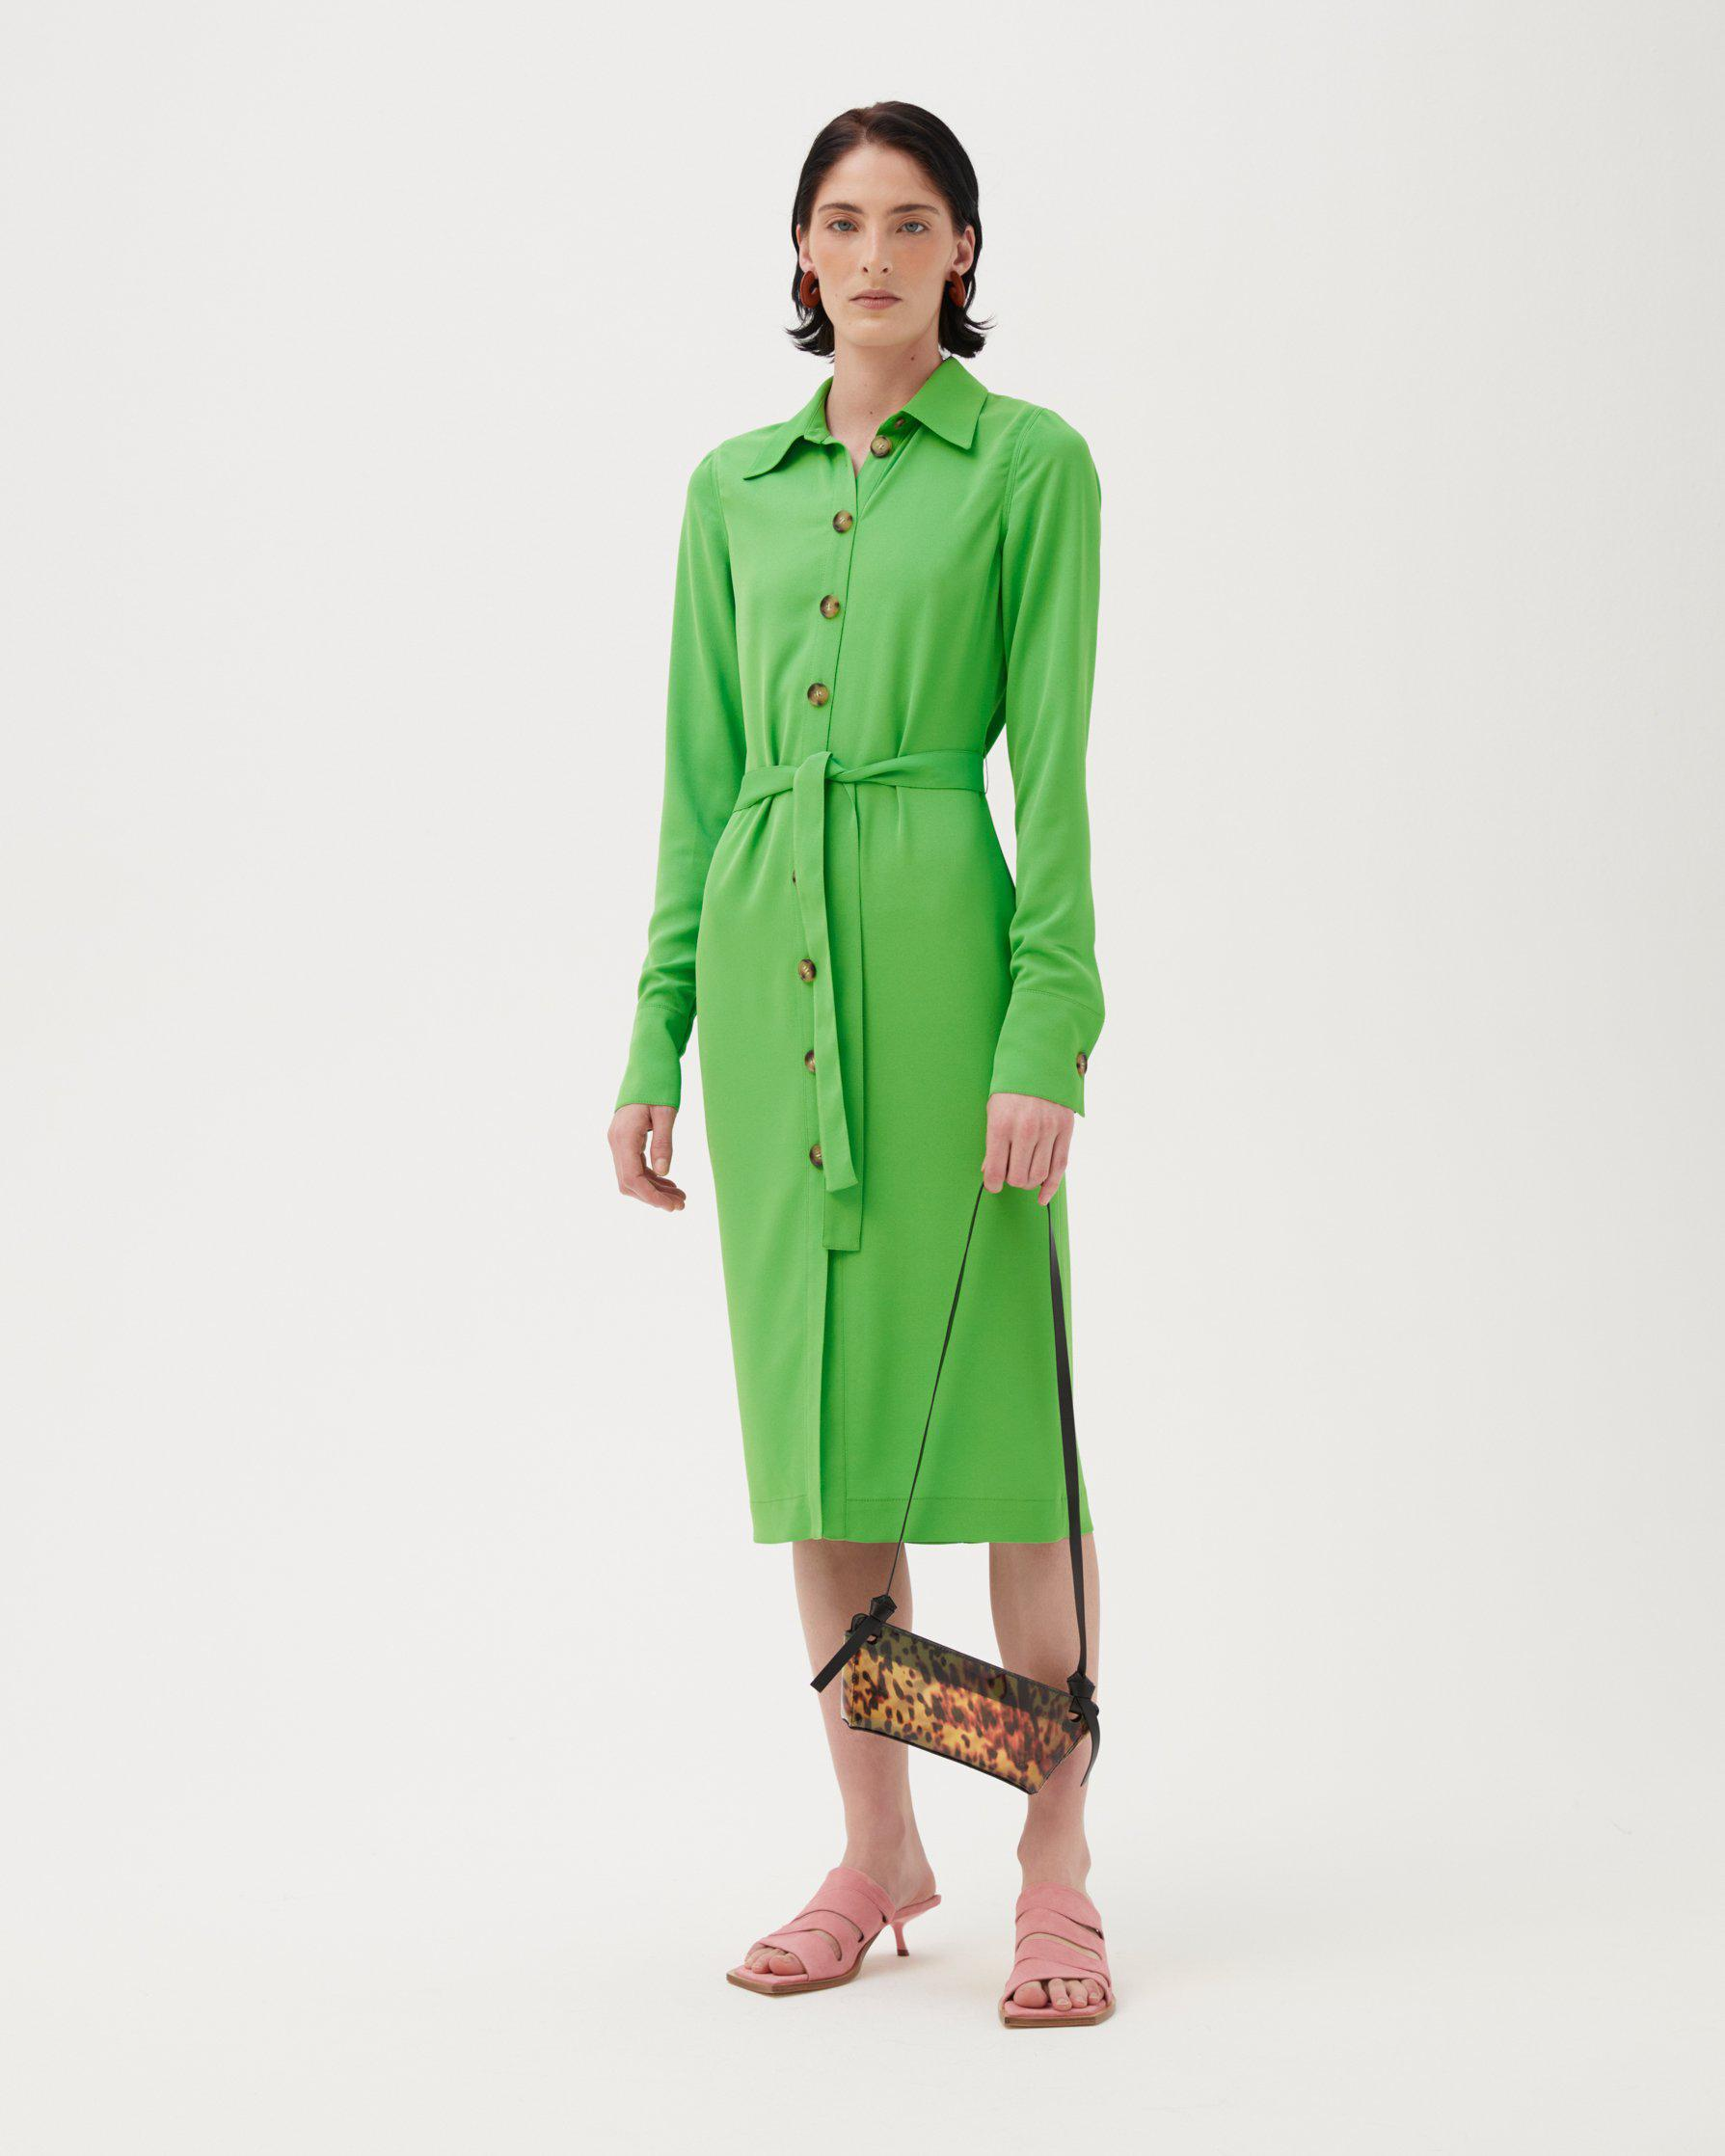 Estelle Dress Recycled Polyester Crepe Green